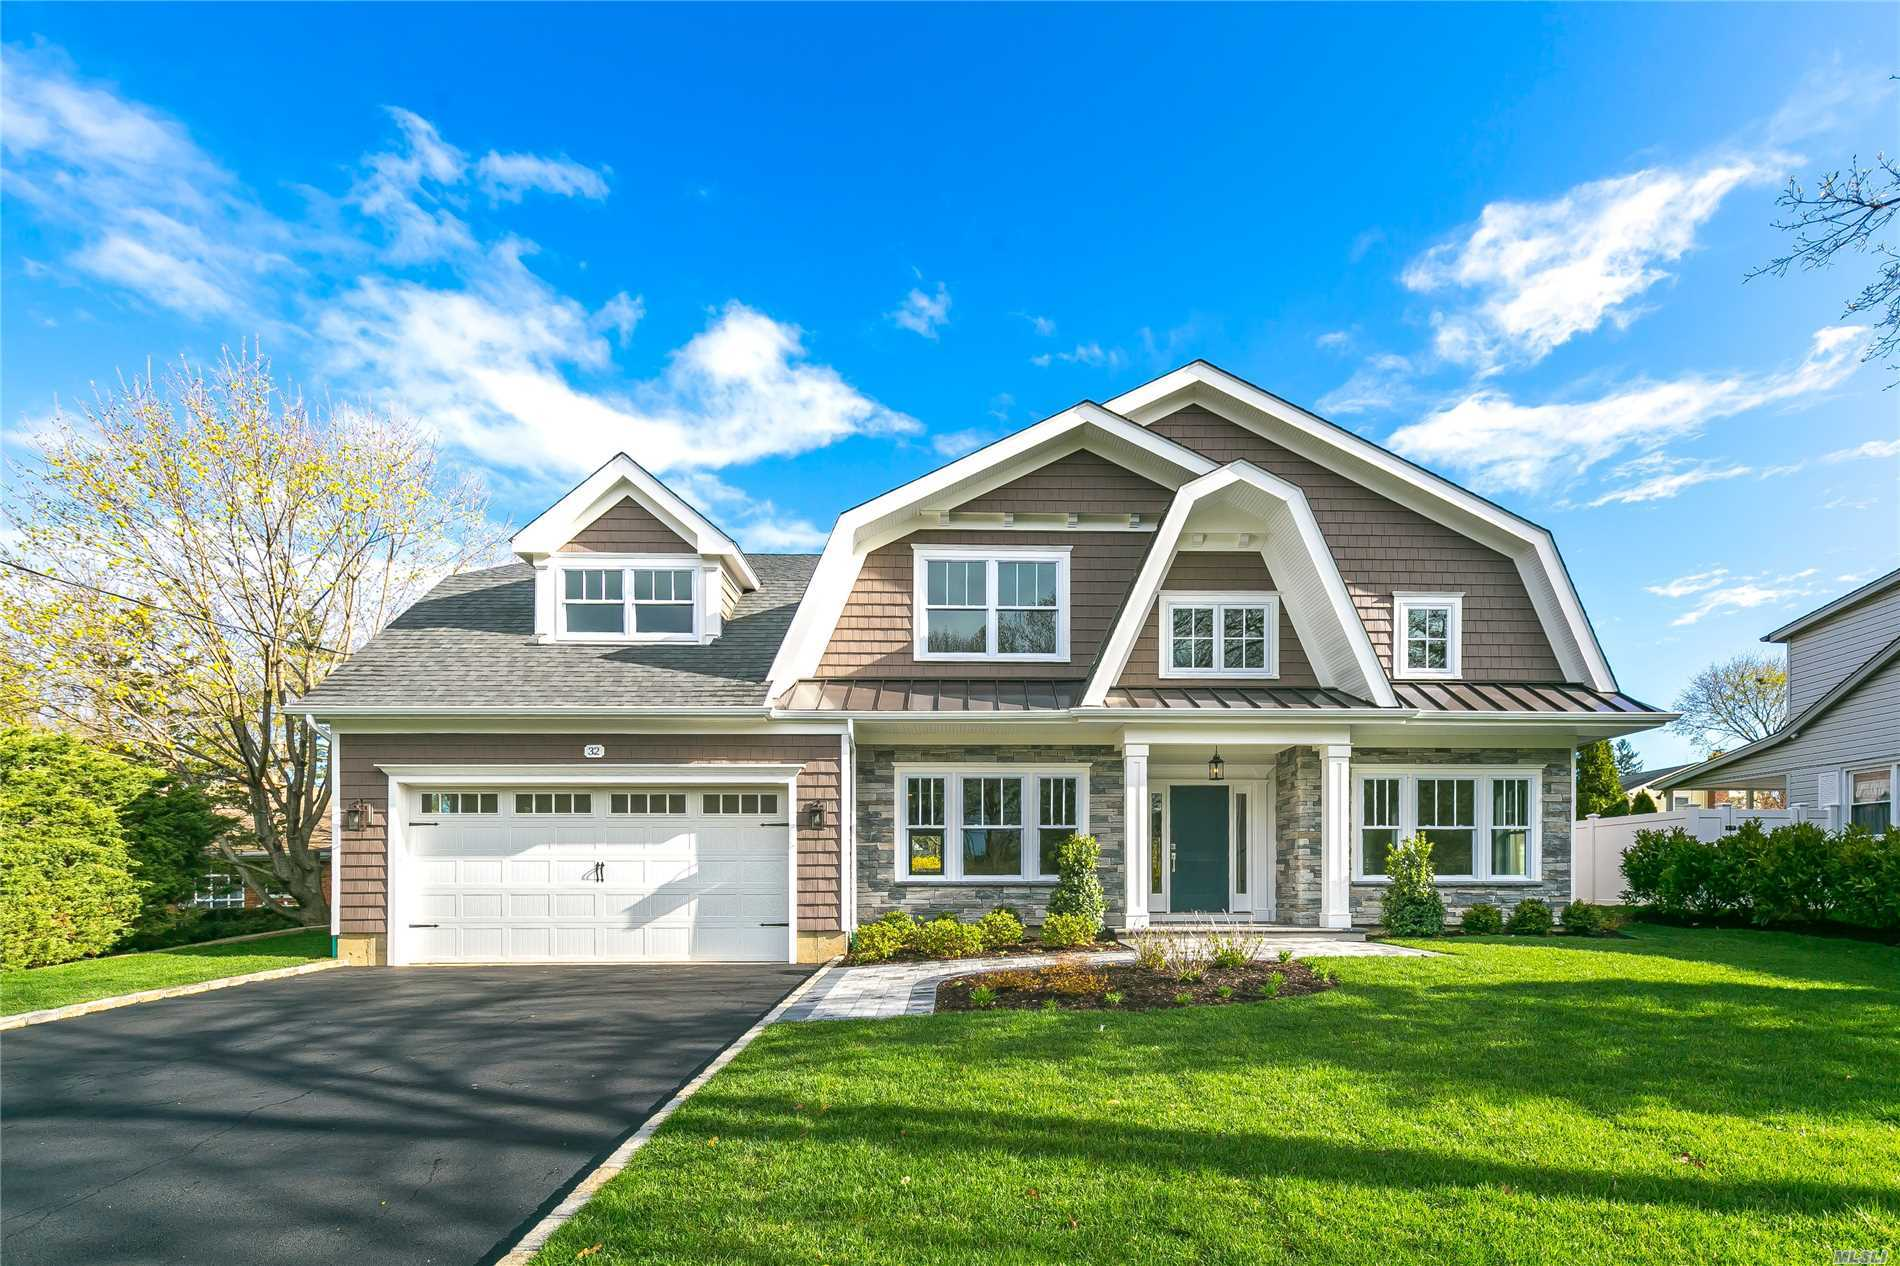 Stunning New 5BR Hampton Colonial in the heart of N.Syosset complete & ready for summer occupancy!Superior Workmanship & Custom Millwork throughout, Massive open floor plan W/Grand Entry, Oversized Kitchen W/Viking appliance package, modern gas fireplace in Great Room, hardwood floors, every closet W/built-ins & new alarm system.Full Finished basement W/full bath & Completely Landscaped property W/new sprinkler system!Room for a pool! Ideally located near shopping, transportation & places of worship.